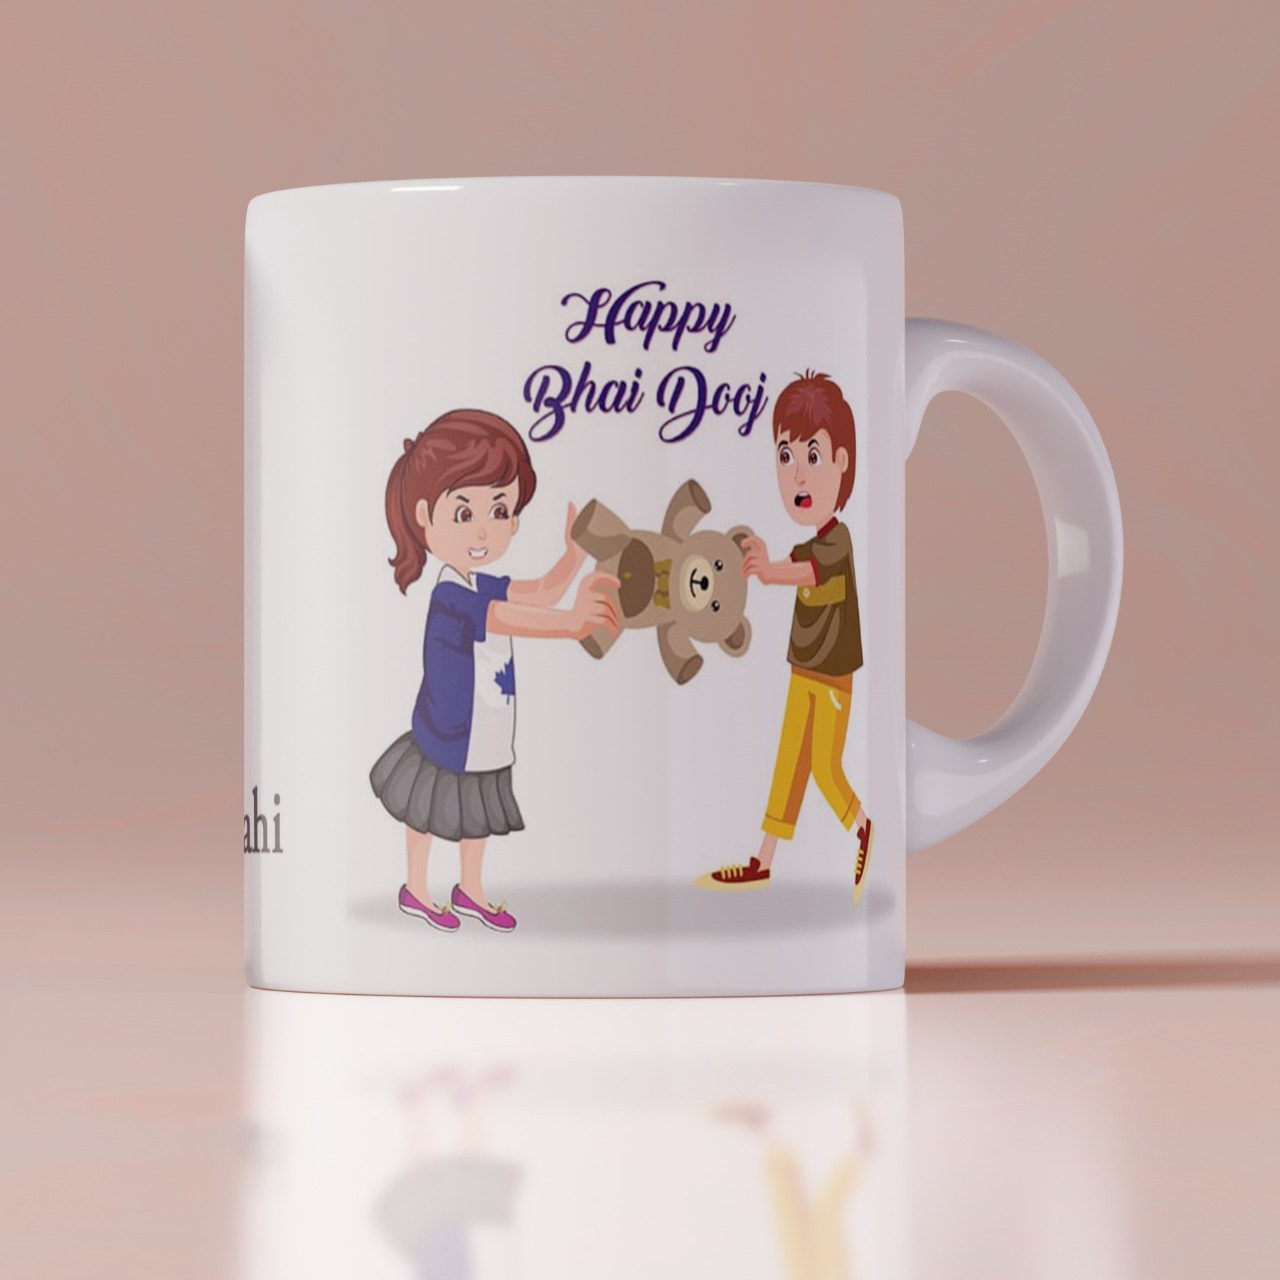 Happy Bhai Dooj  Mug